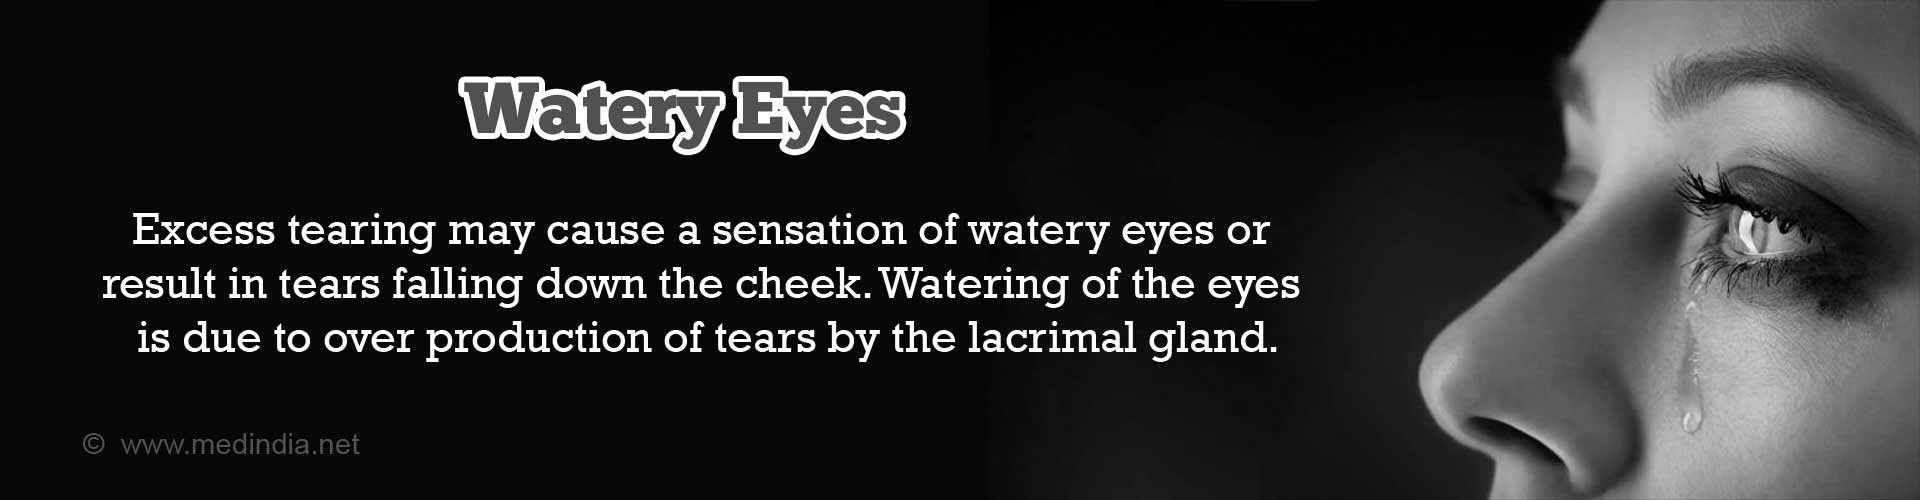 Watery Eyes